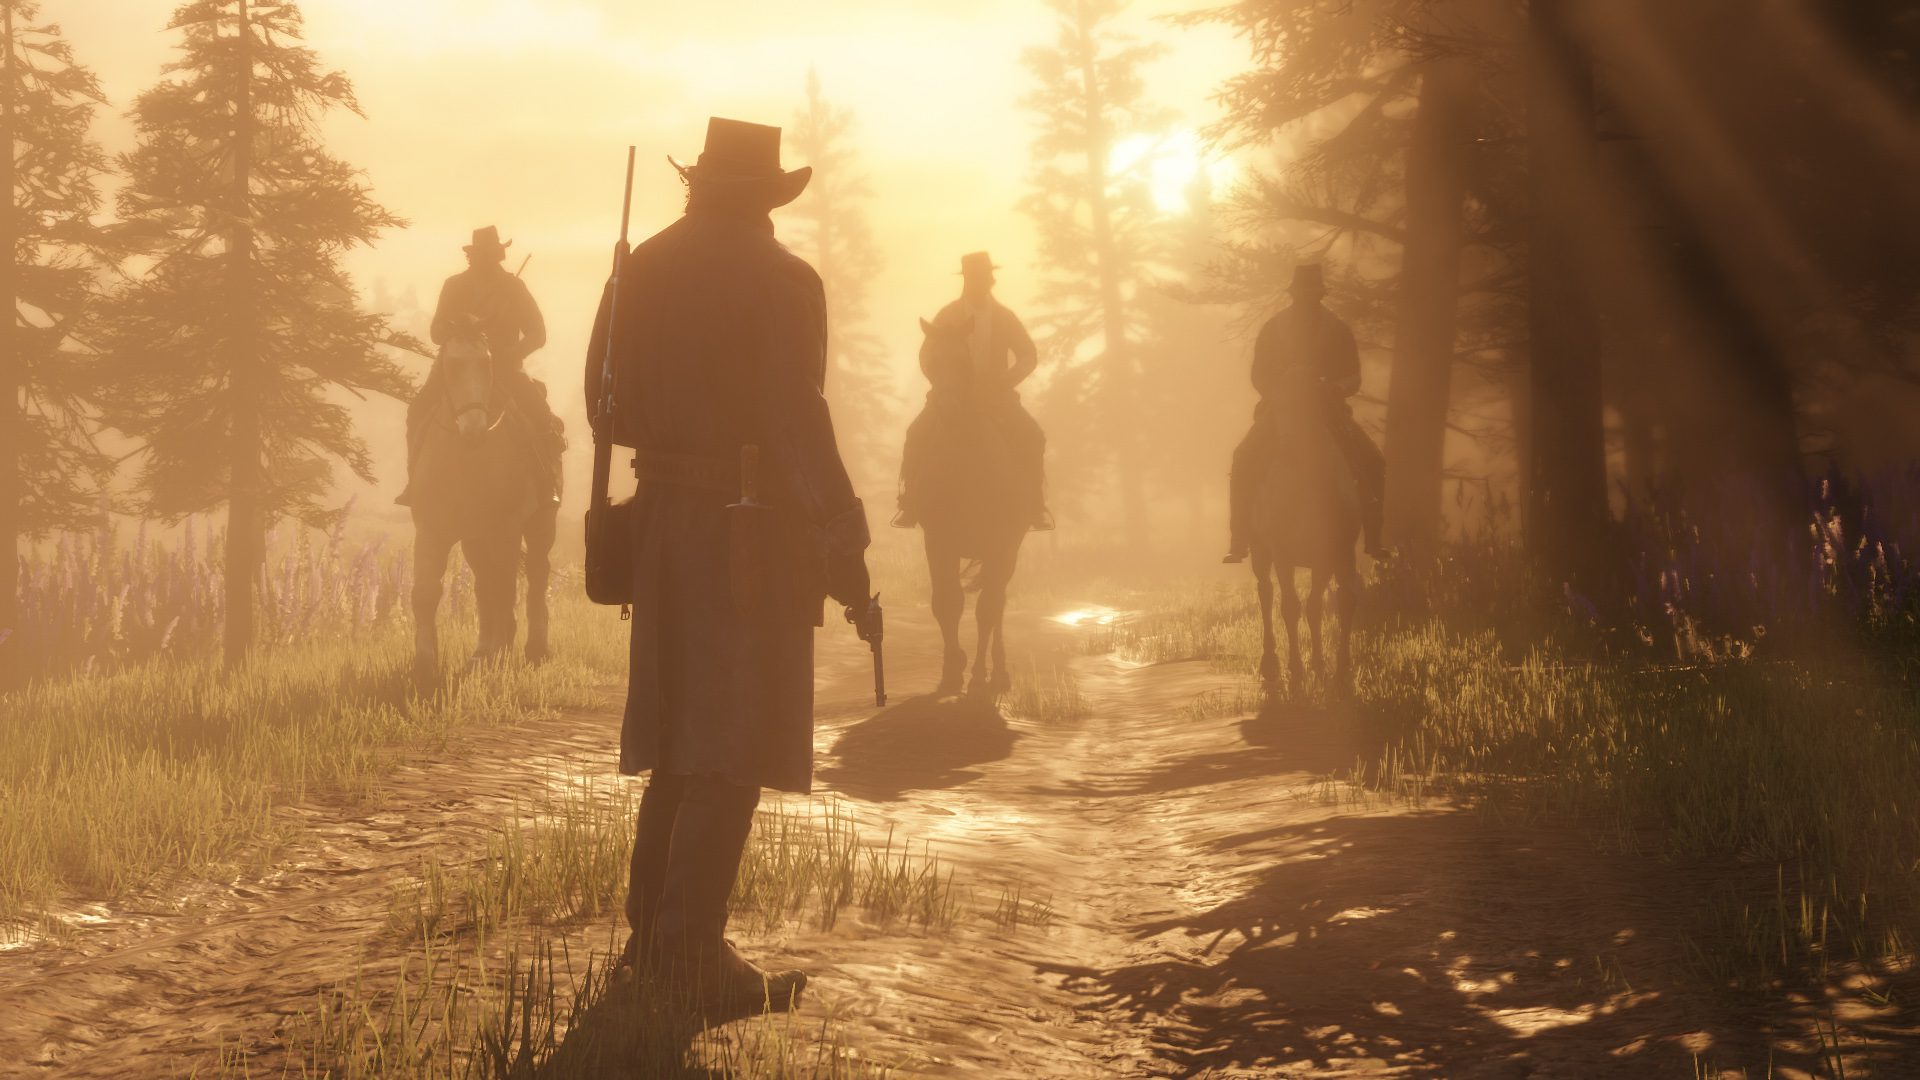 A Recent Next-Gen Red Dead Redemption 2 Leak Appears to be Fake